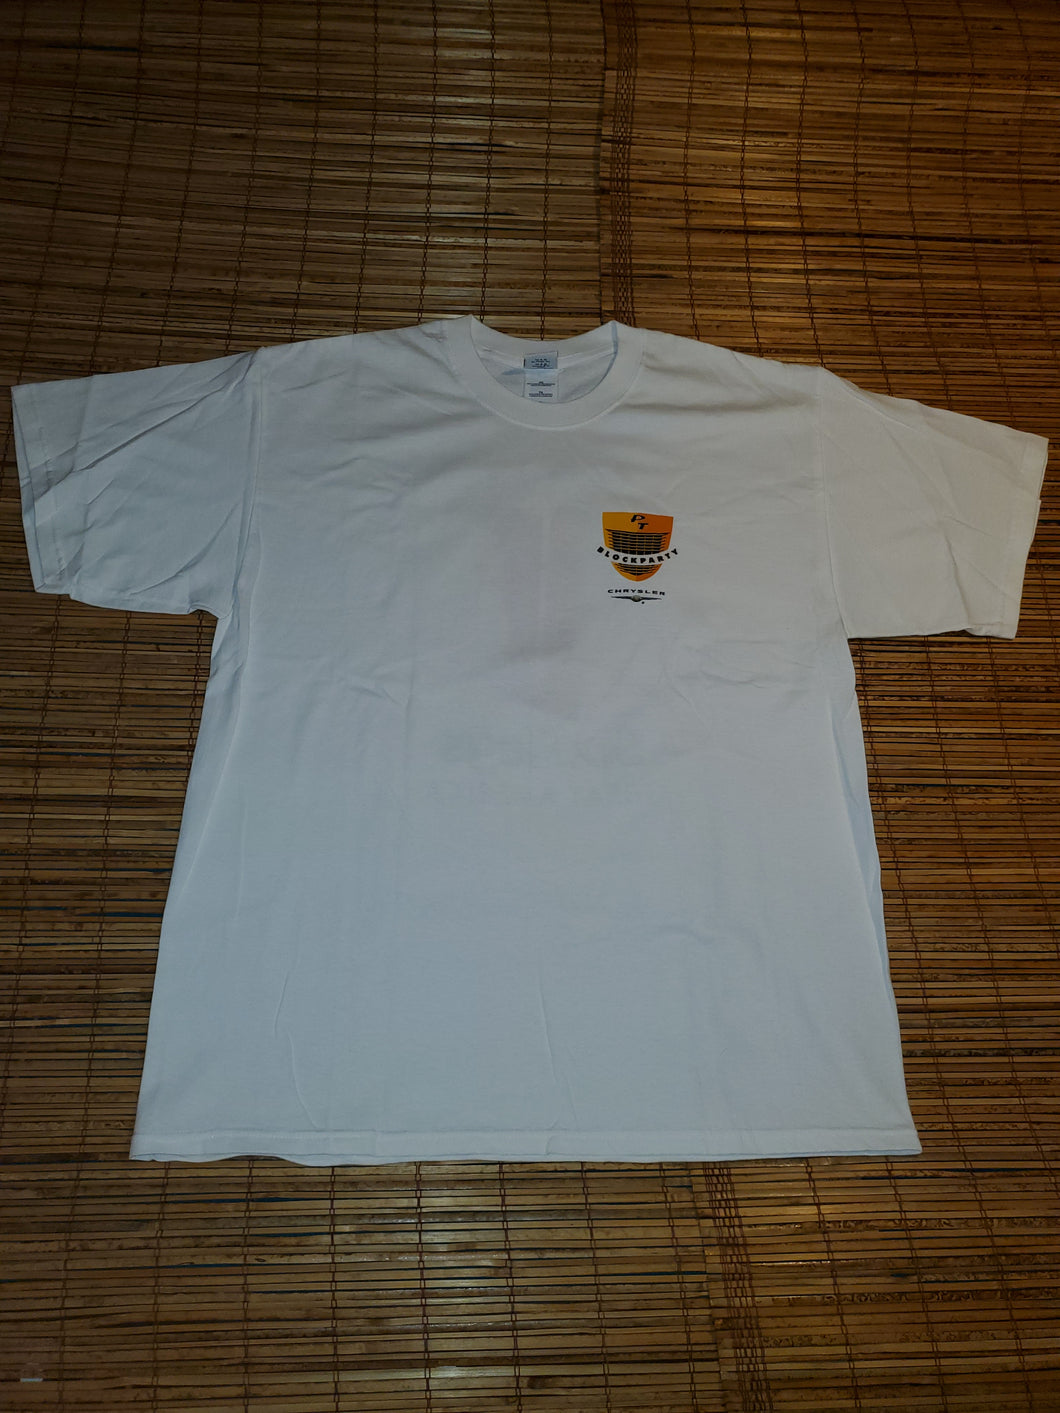 XL - Looney Tunes 6 Flags Shirt